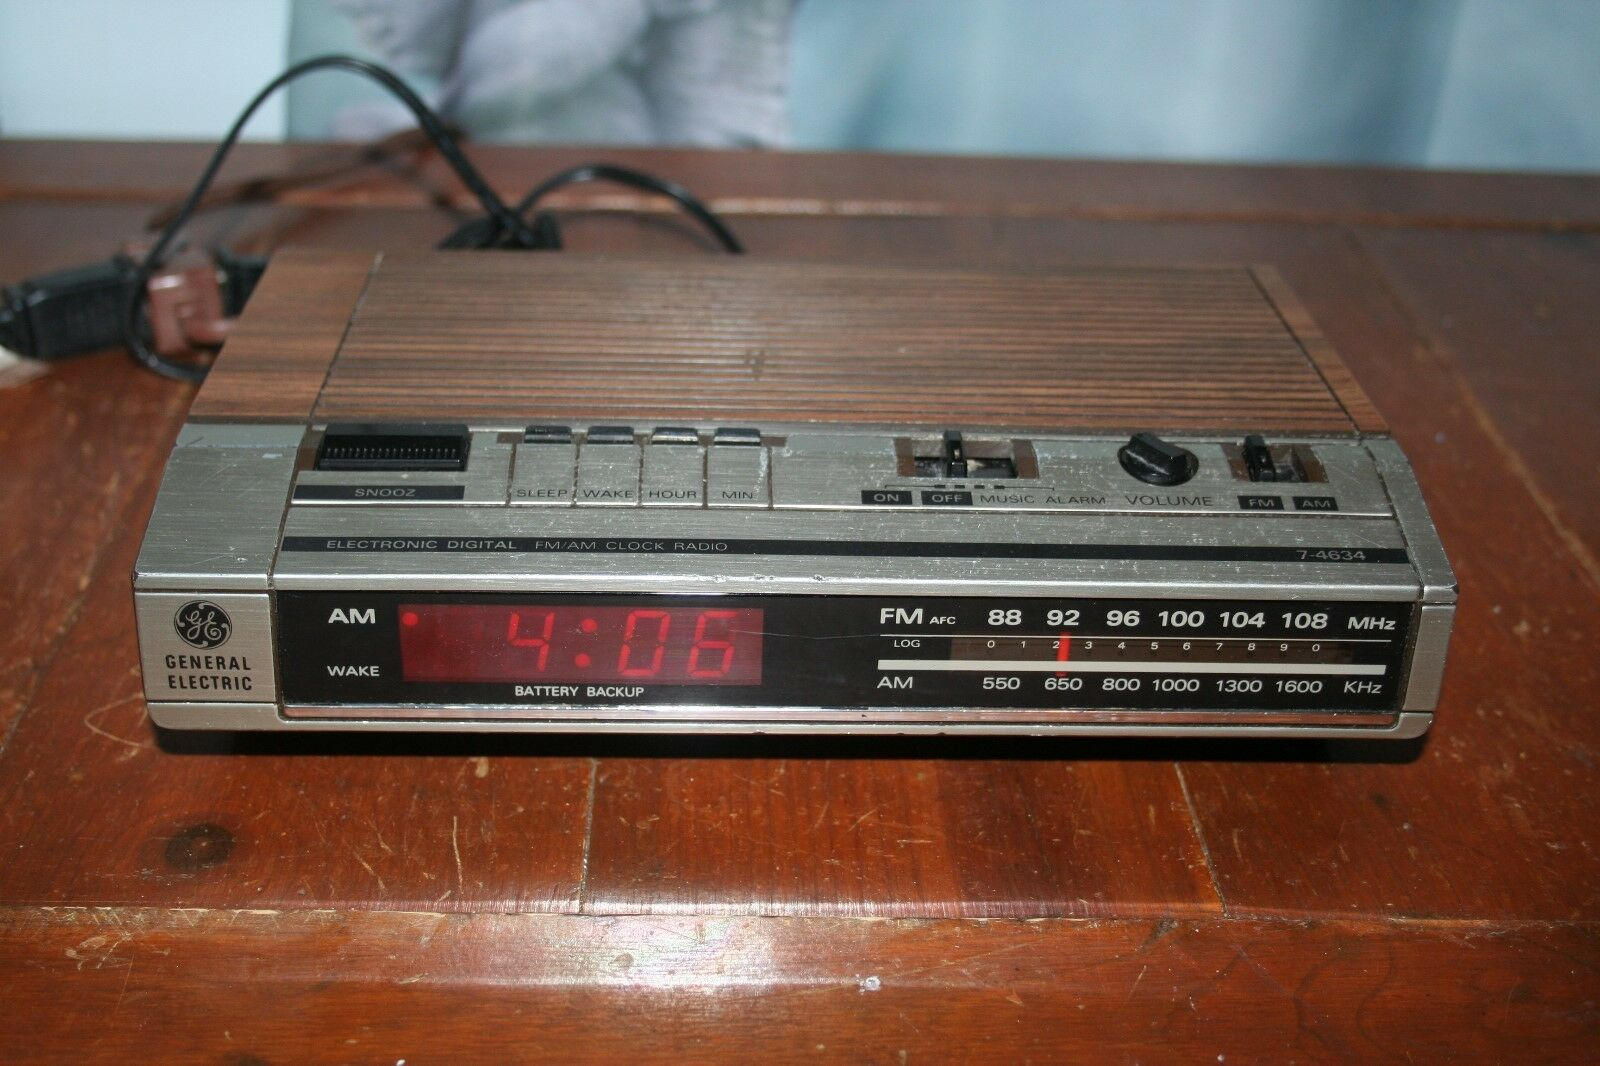 GE Electronic Digital FM/AM Alarm Clock Radio (Model 7-4634B)